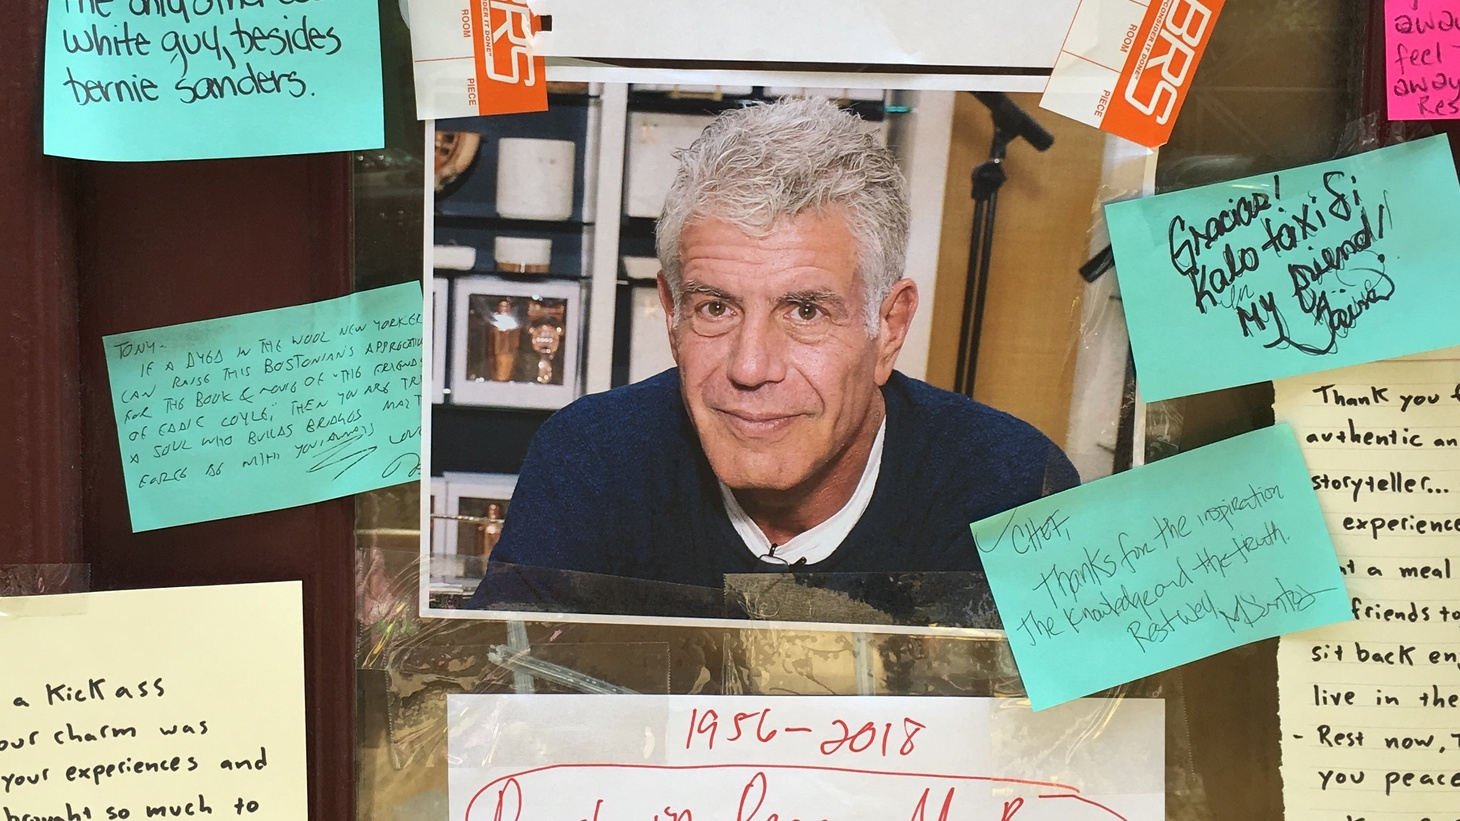 Shortly after Bourdain's death last year, mourners taped notes to the windows of the now-shuttered Brasserie Les Halles in New York City.